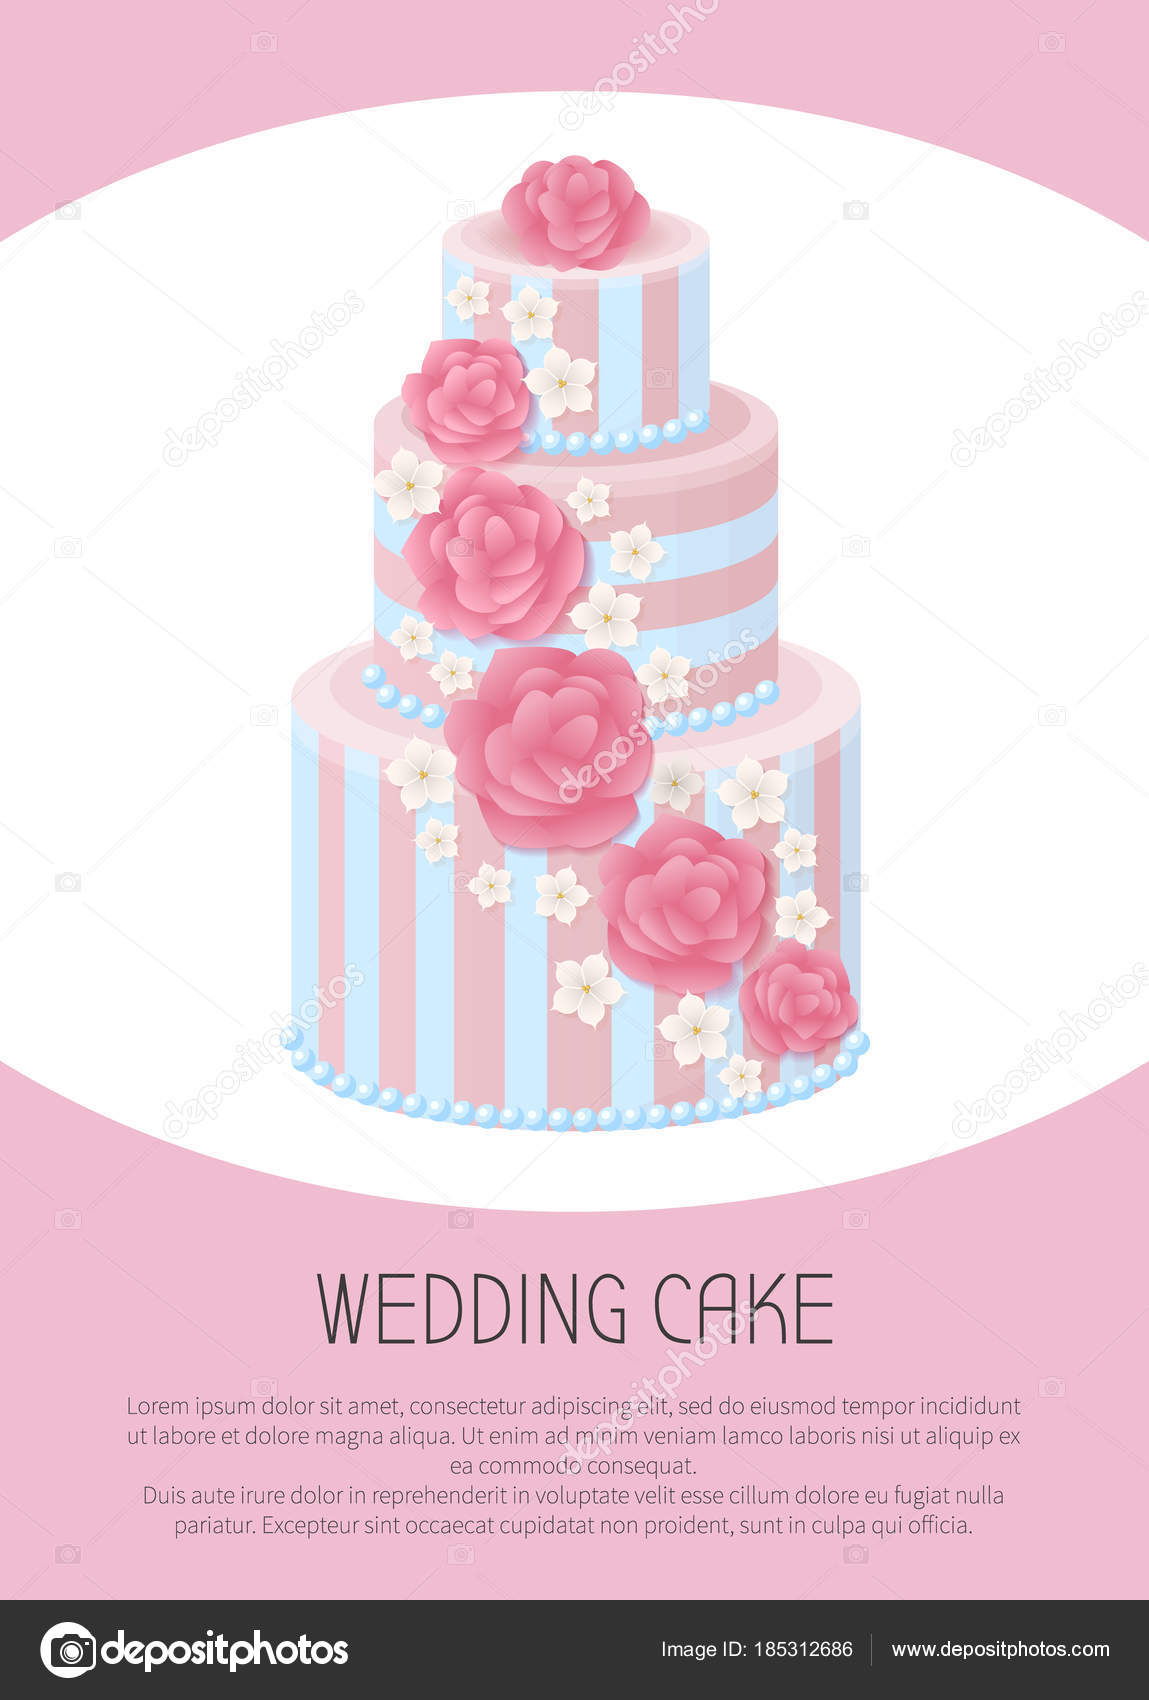 Three-Tier Wedding Cake Decorated with Glaze Roses — Stock Vector ...